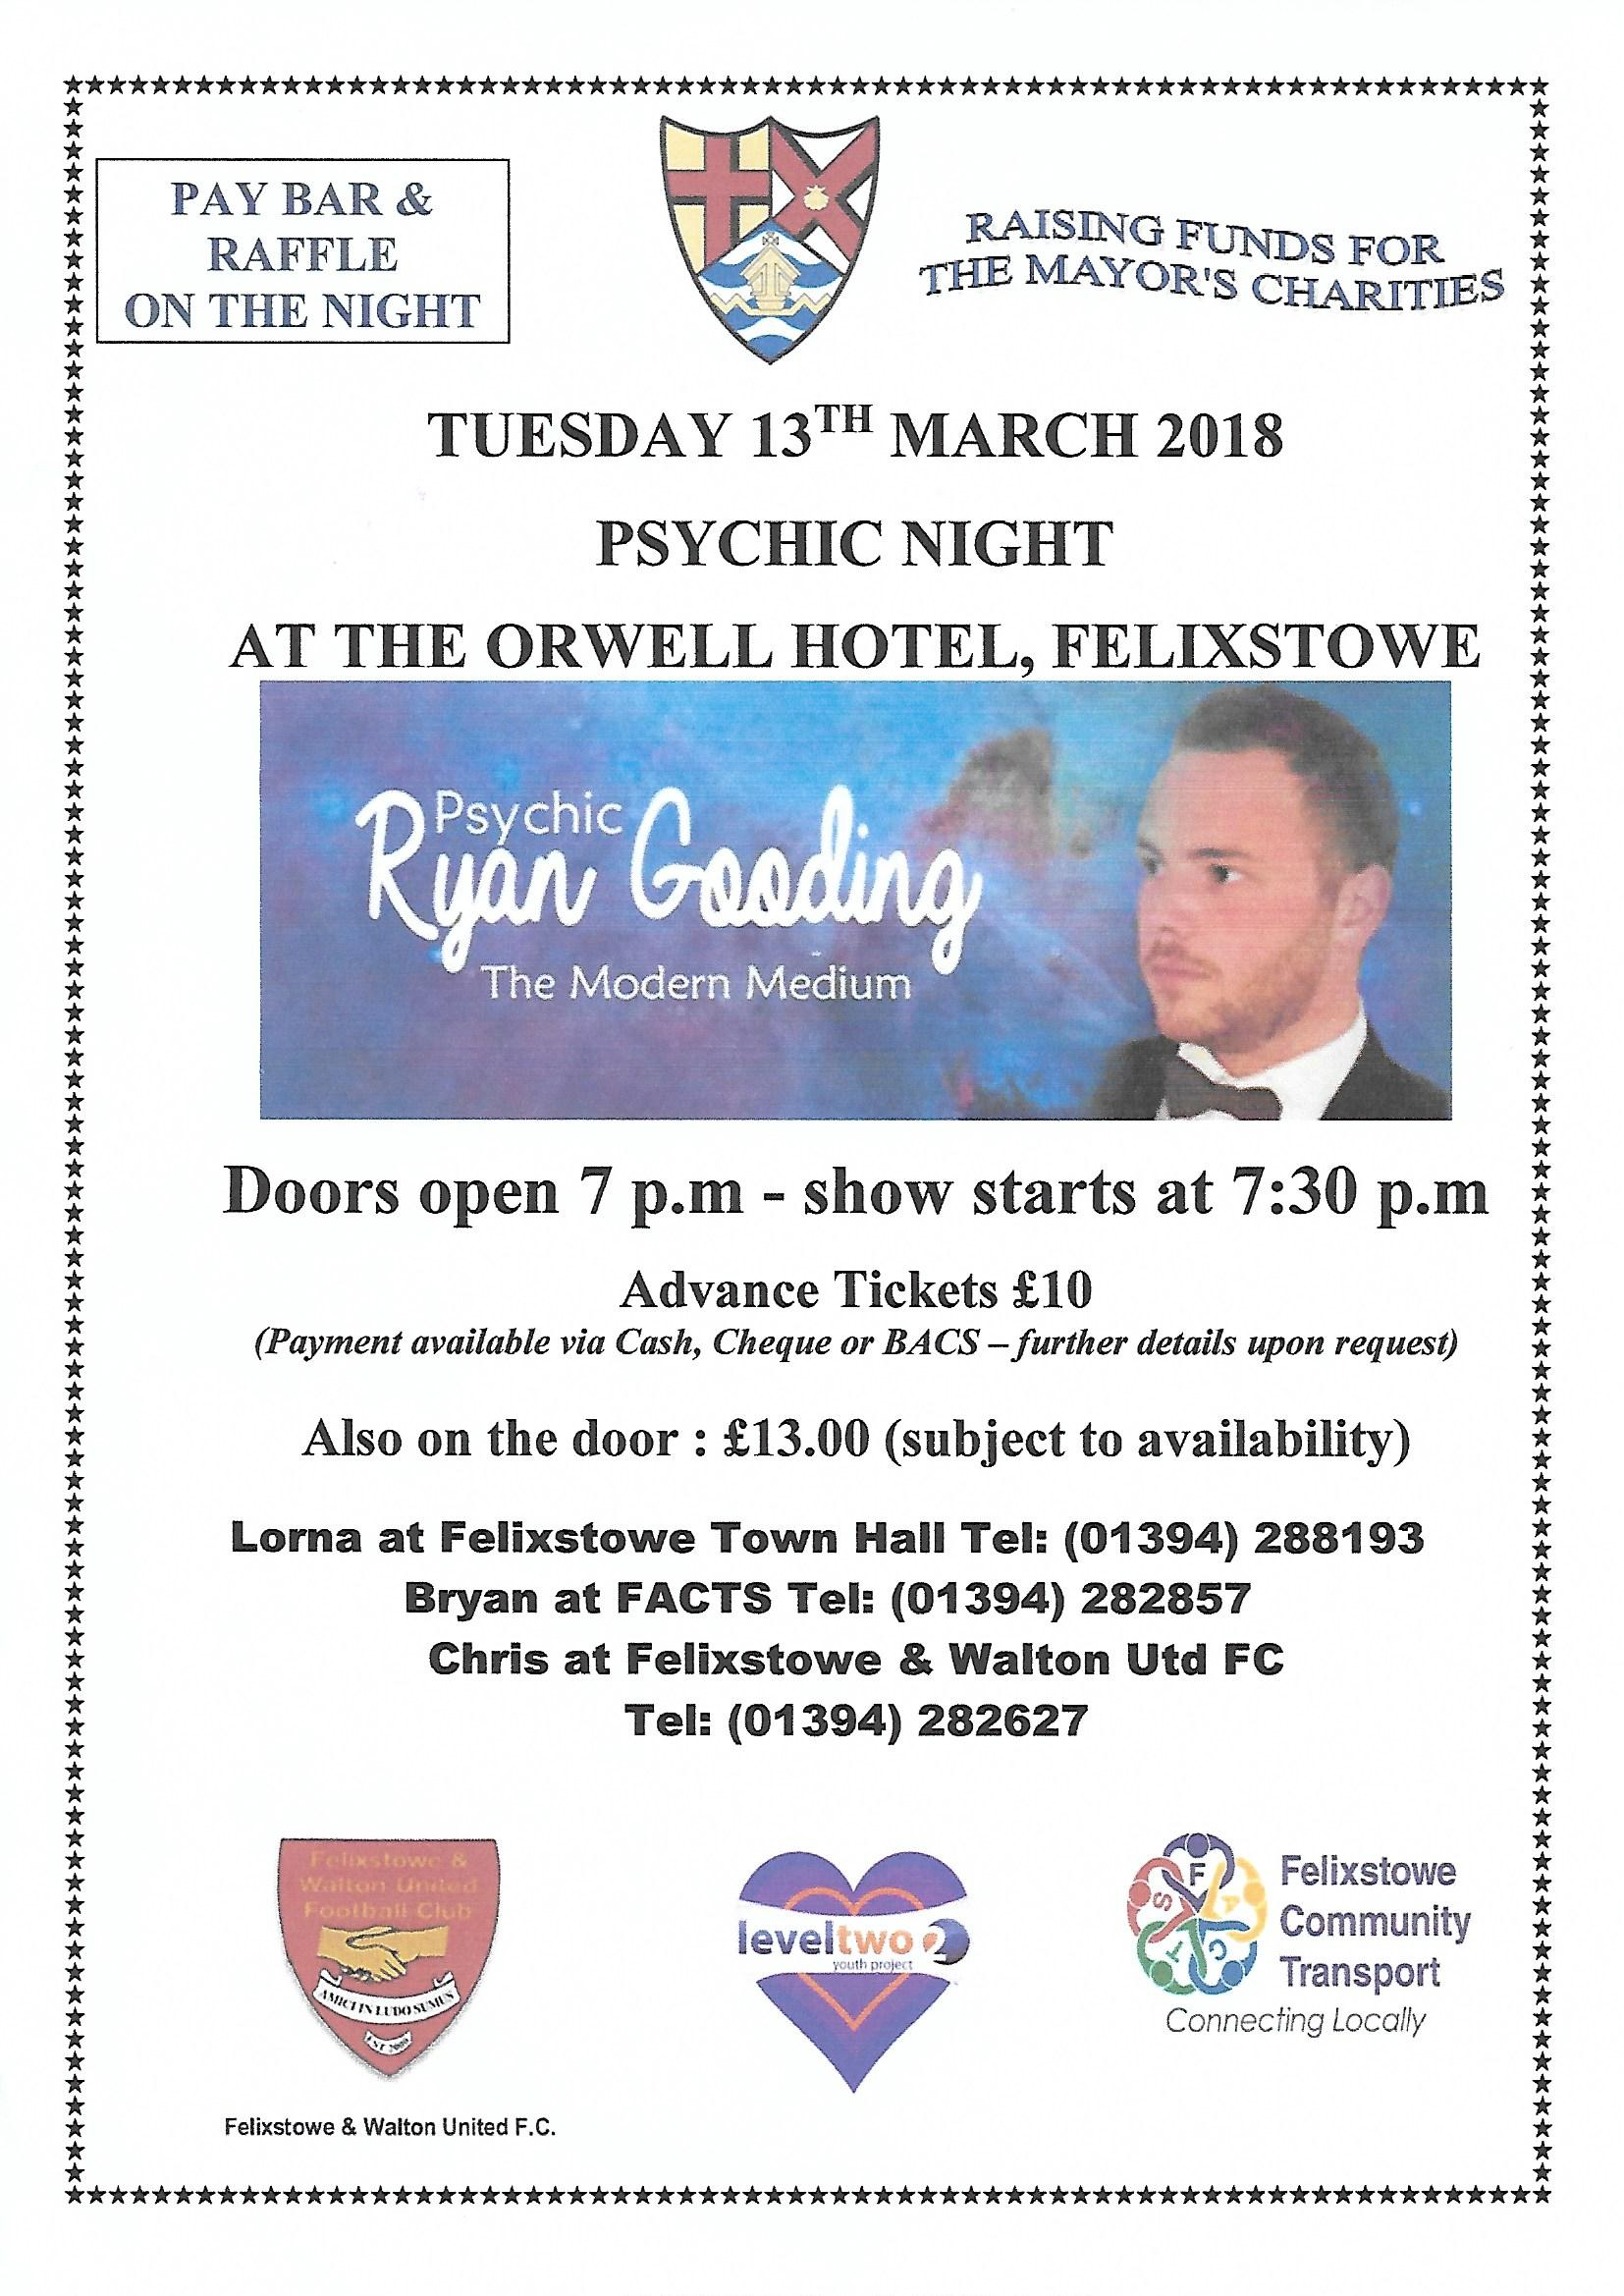 Psychic Night, Tuesday 13 March 2018